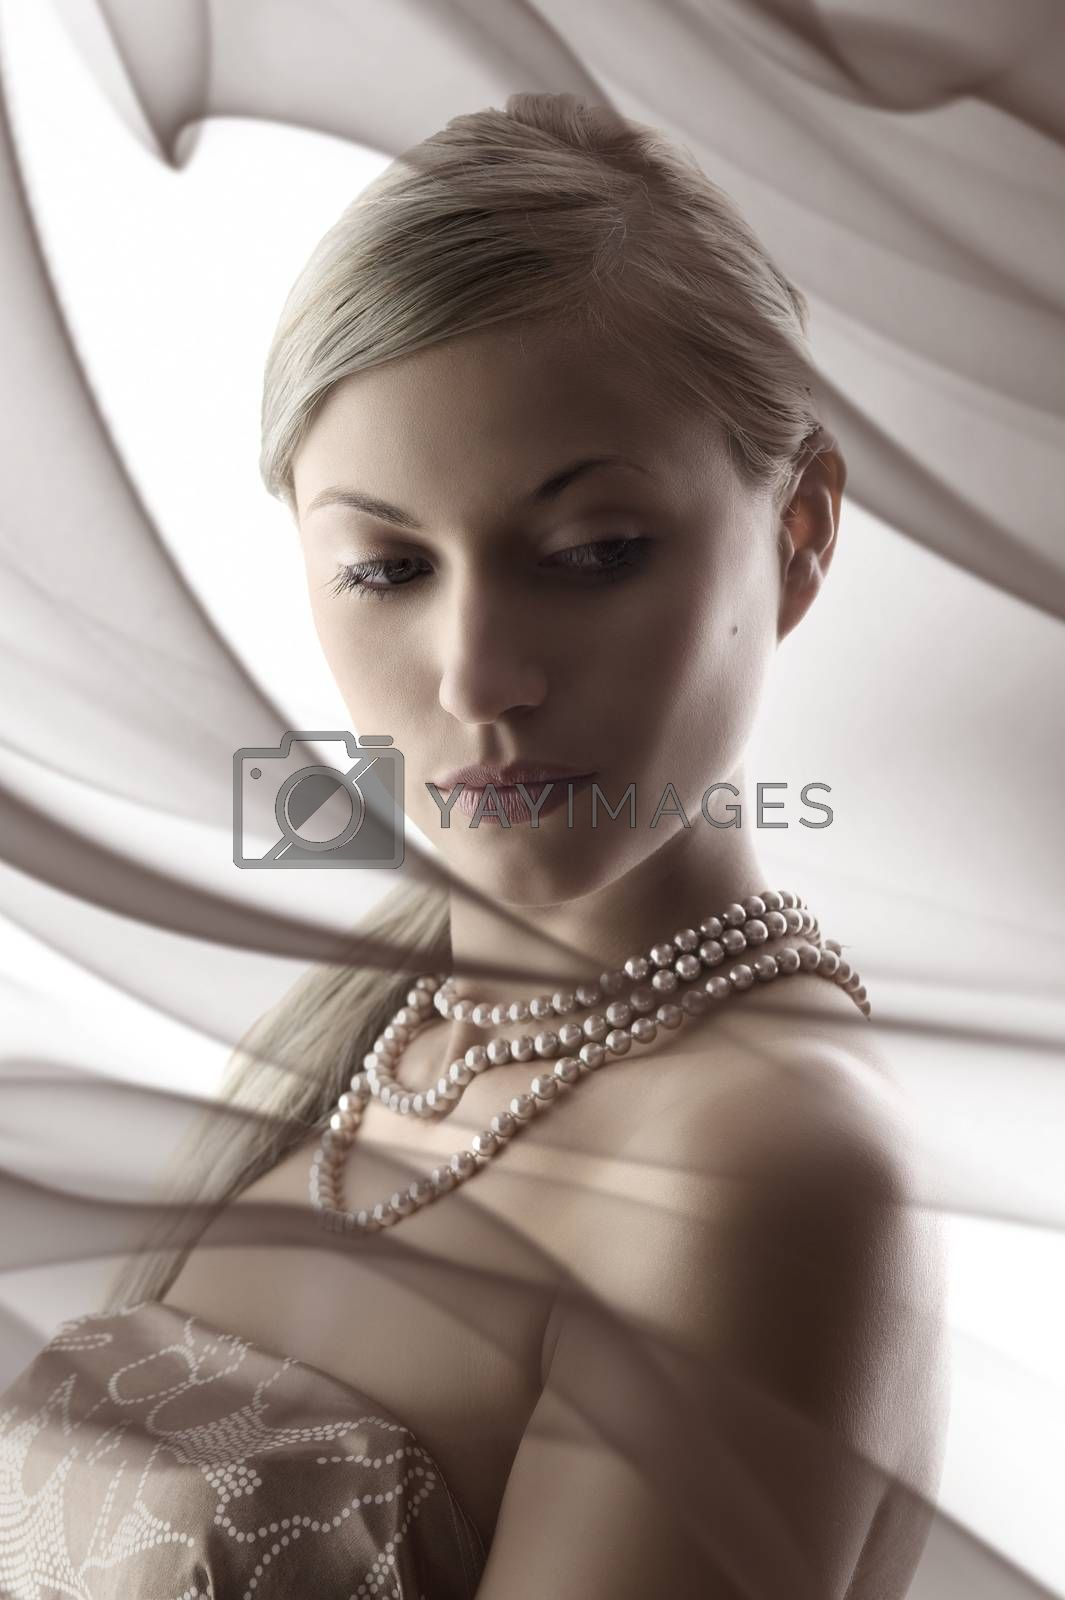 Royalty free image of blond with nacklace by fotoCD